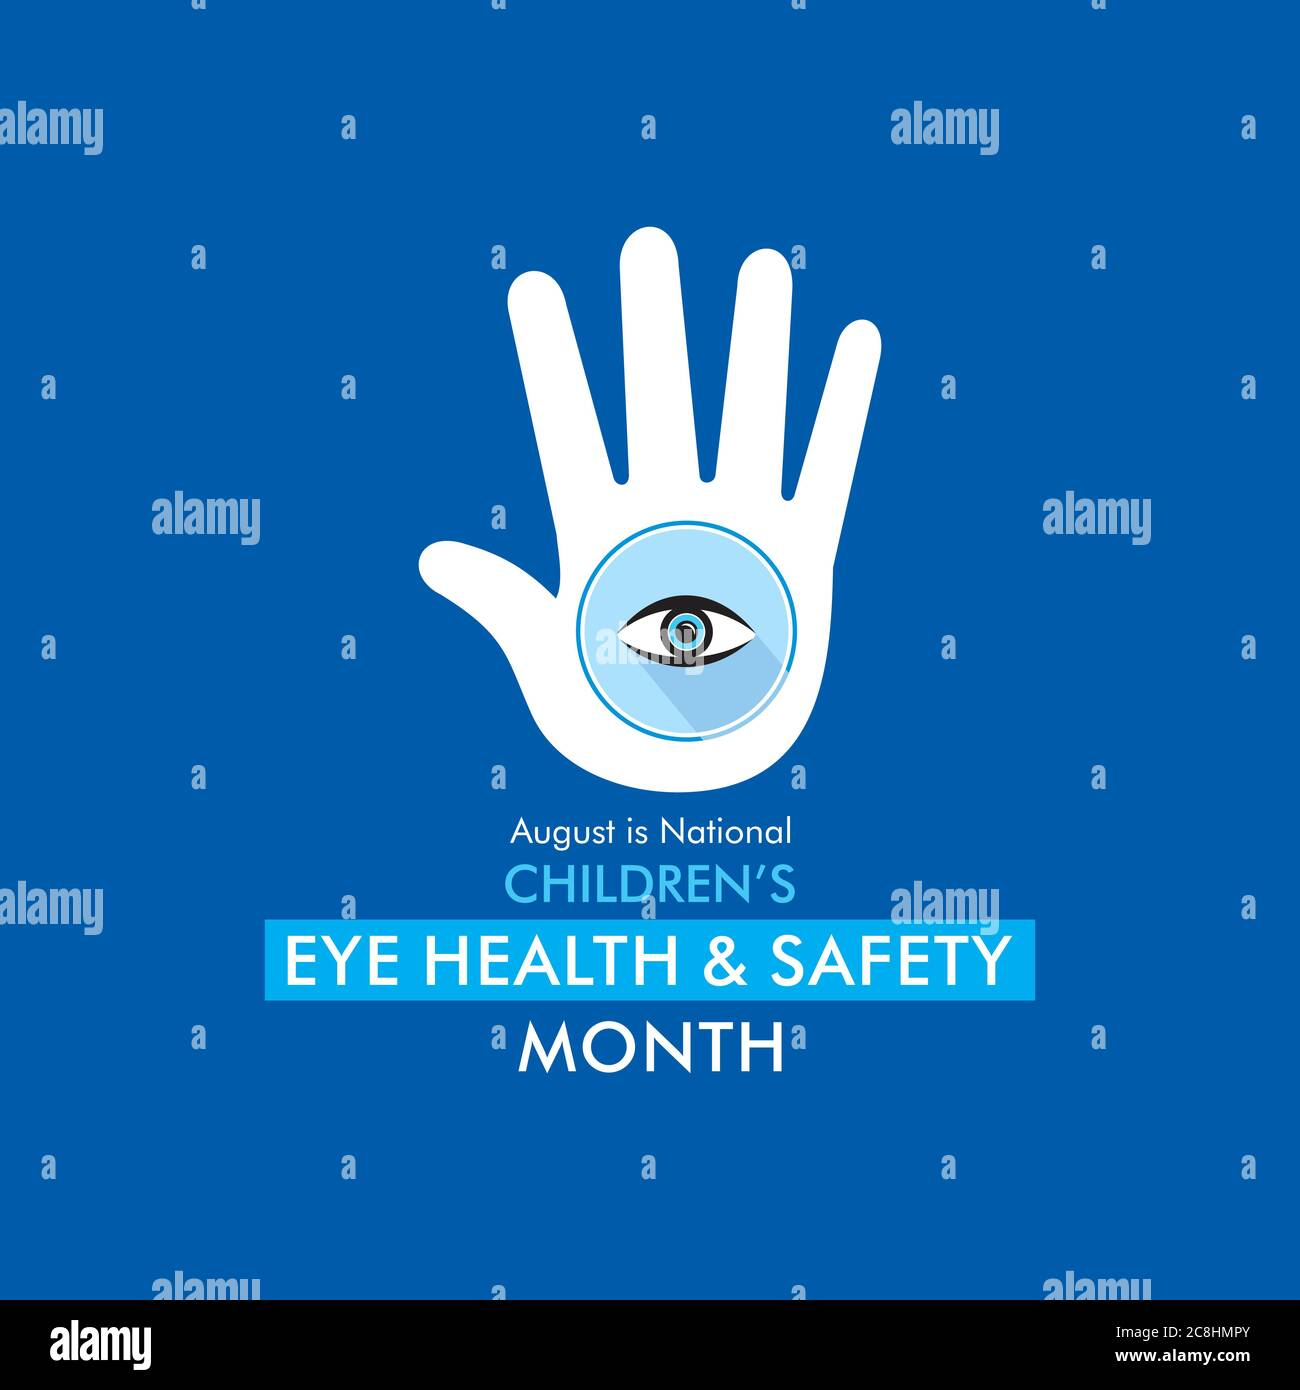 august is children's eye health and safety month awareness poster design Stock Vector